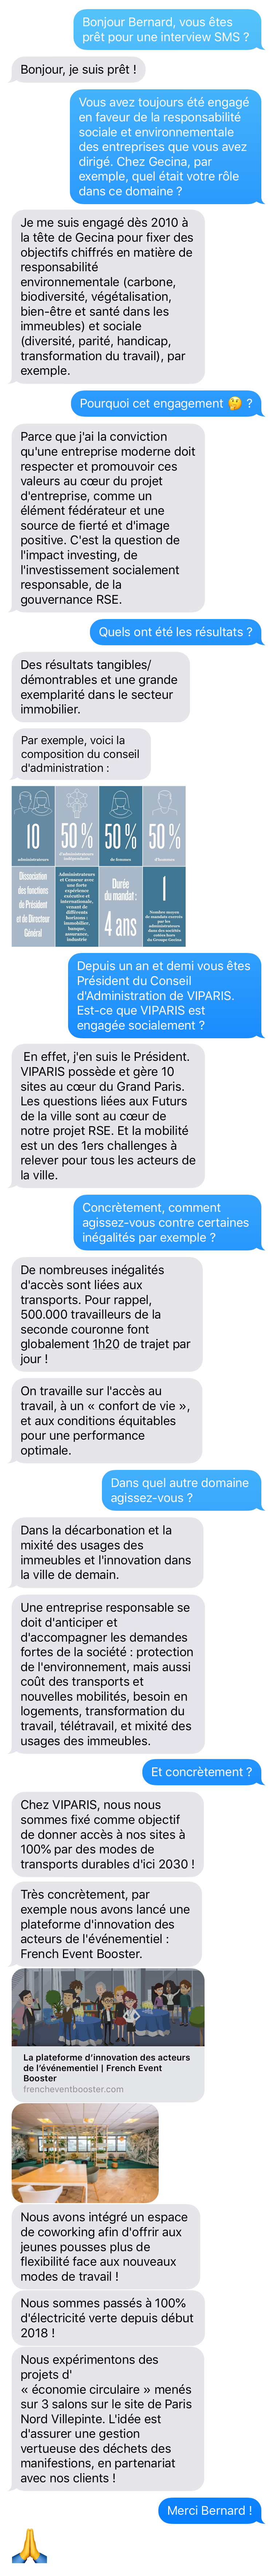 interview-sms-bernard-michel.png